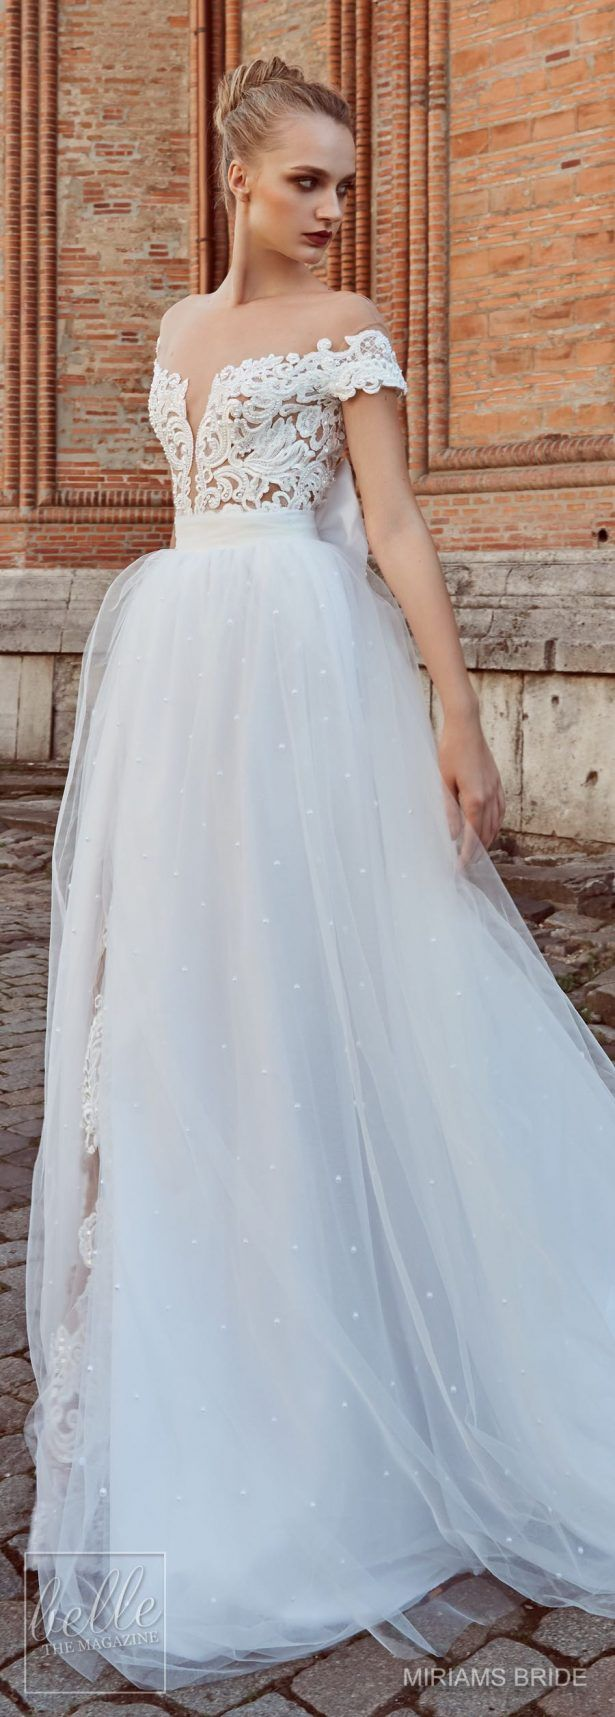 The 7650 best My Favorite Wedding Gowns images on Pinterest ...